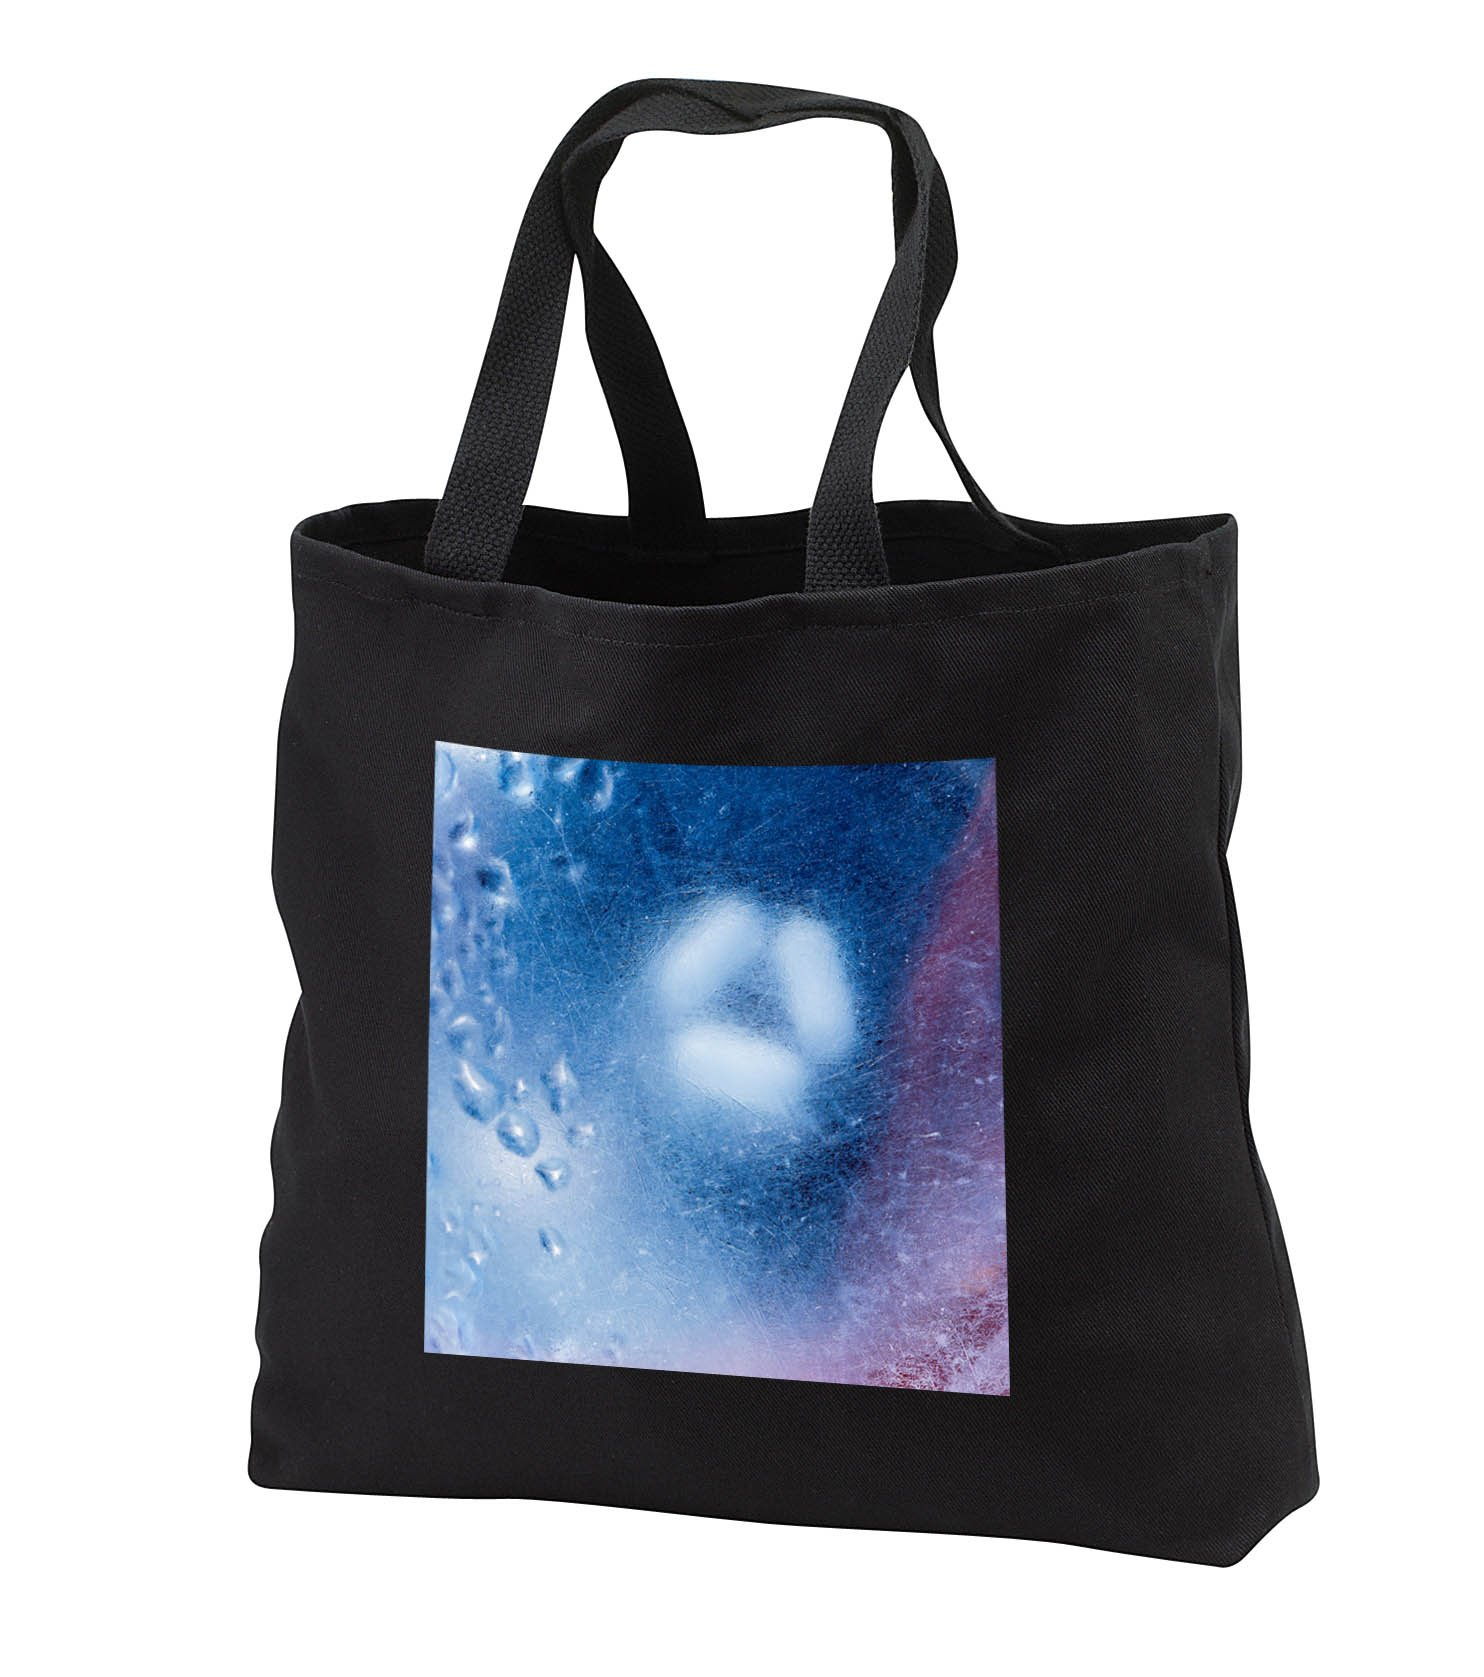 Alexis Photography - Texture Glass - Image of rough glass, water drops, white bulb, blue, red color - Tote Bags - Black Tote Bag JUMBO 20w x 15h x 5d (tb_285765_3)